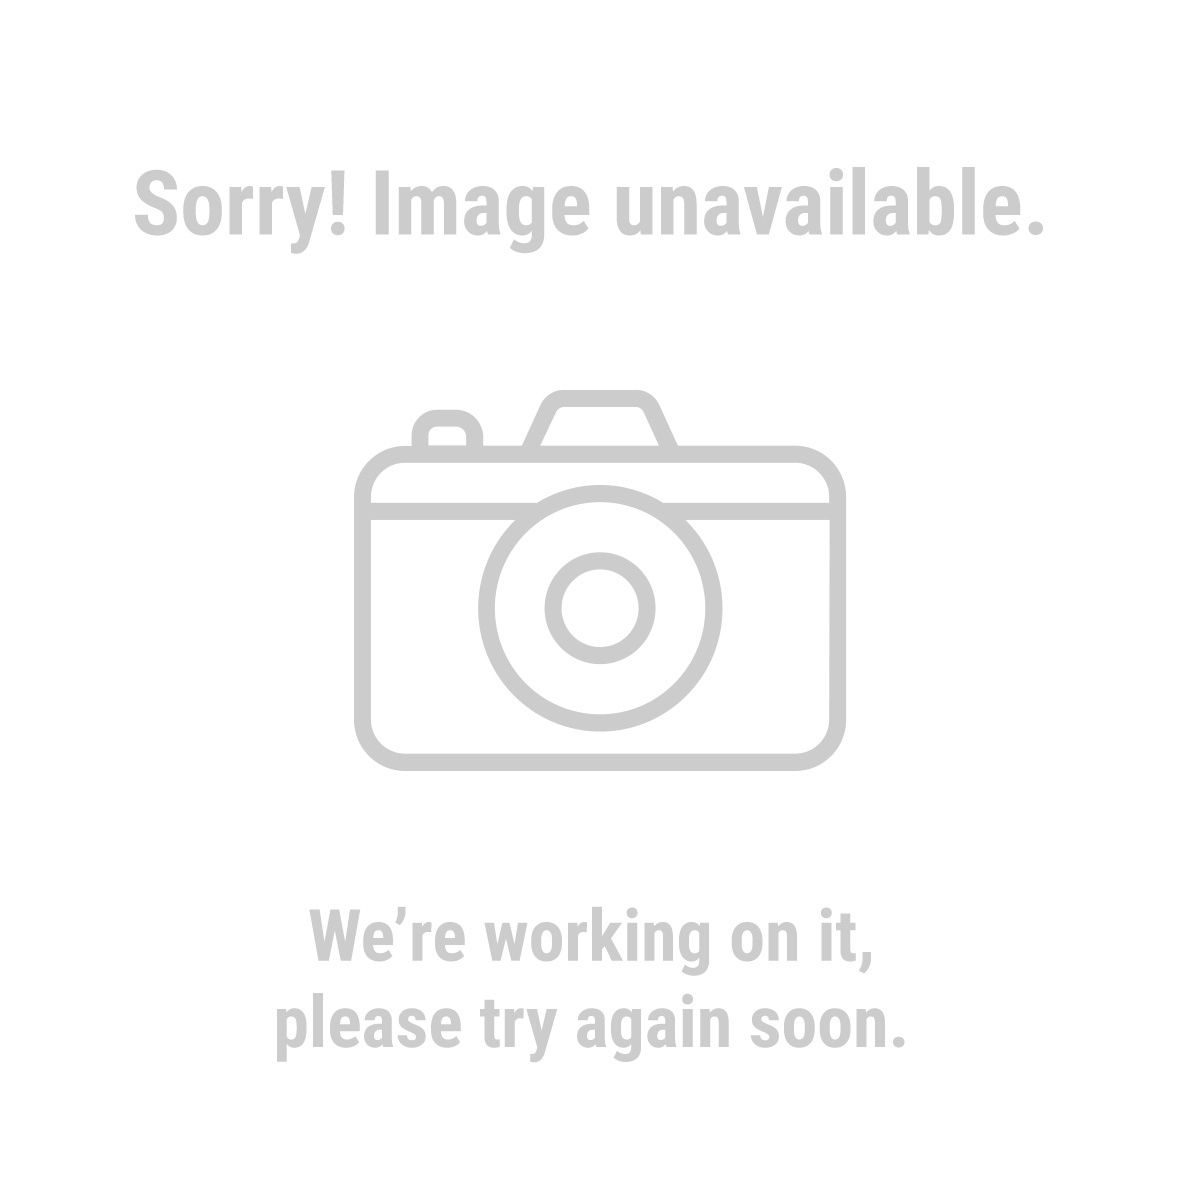 Central Forge 68978 Ceramic Tile Cutter